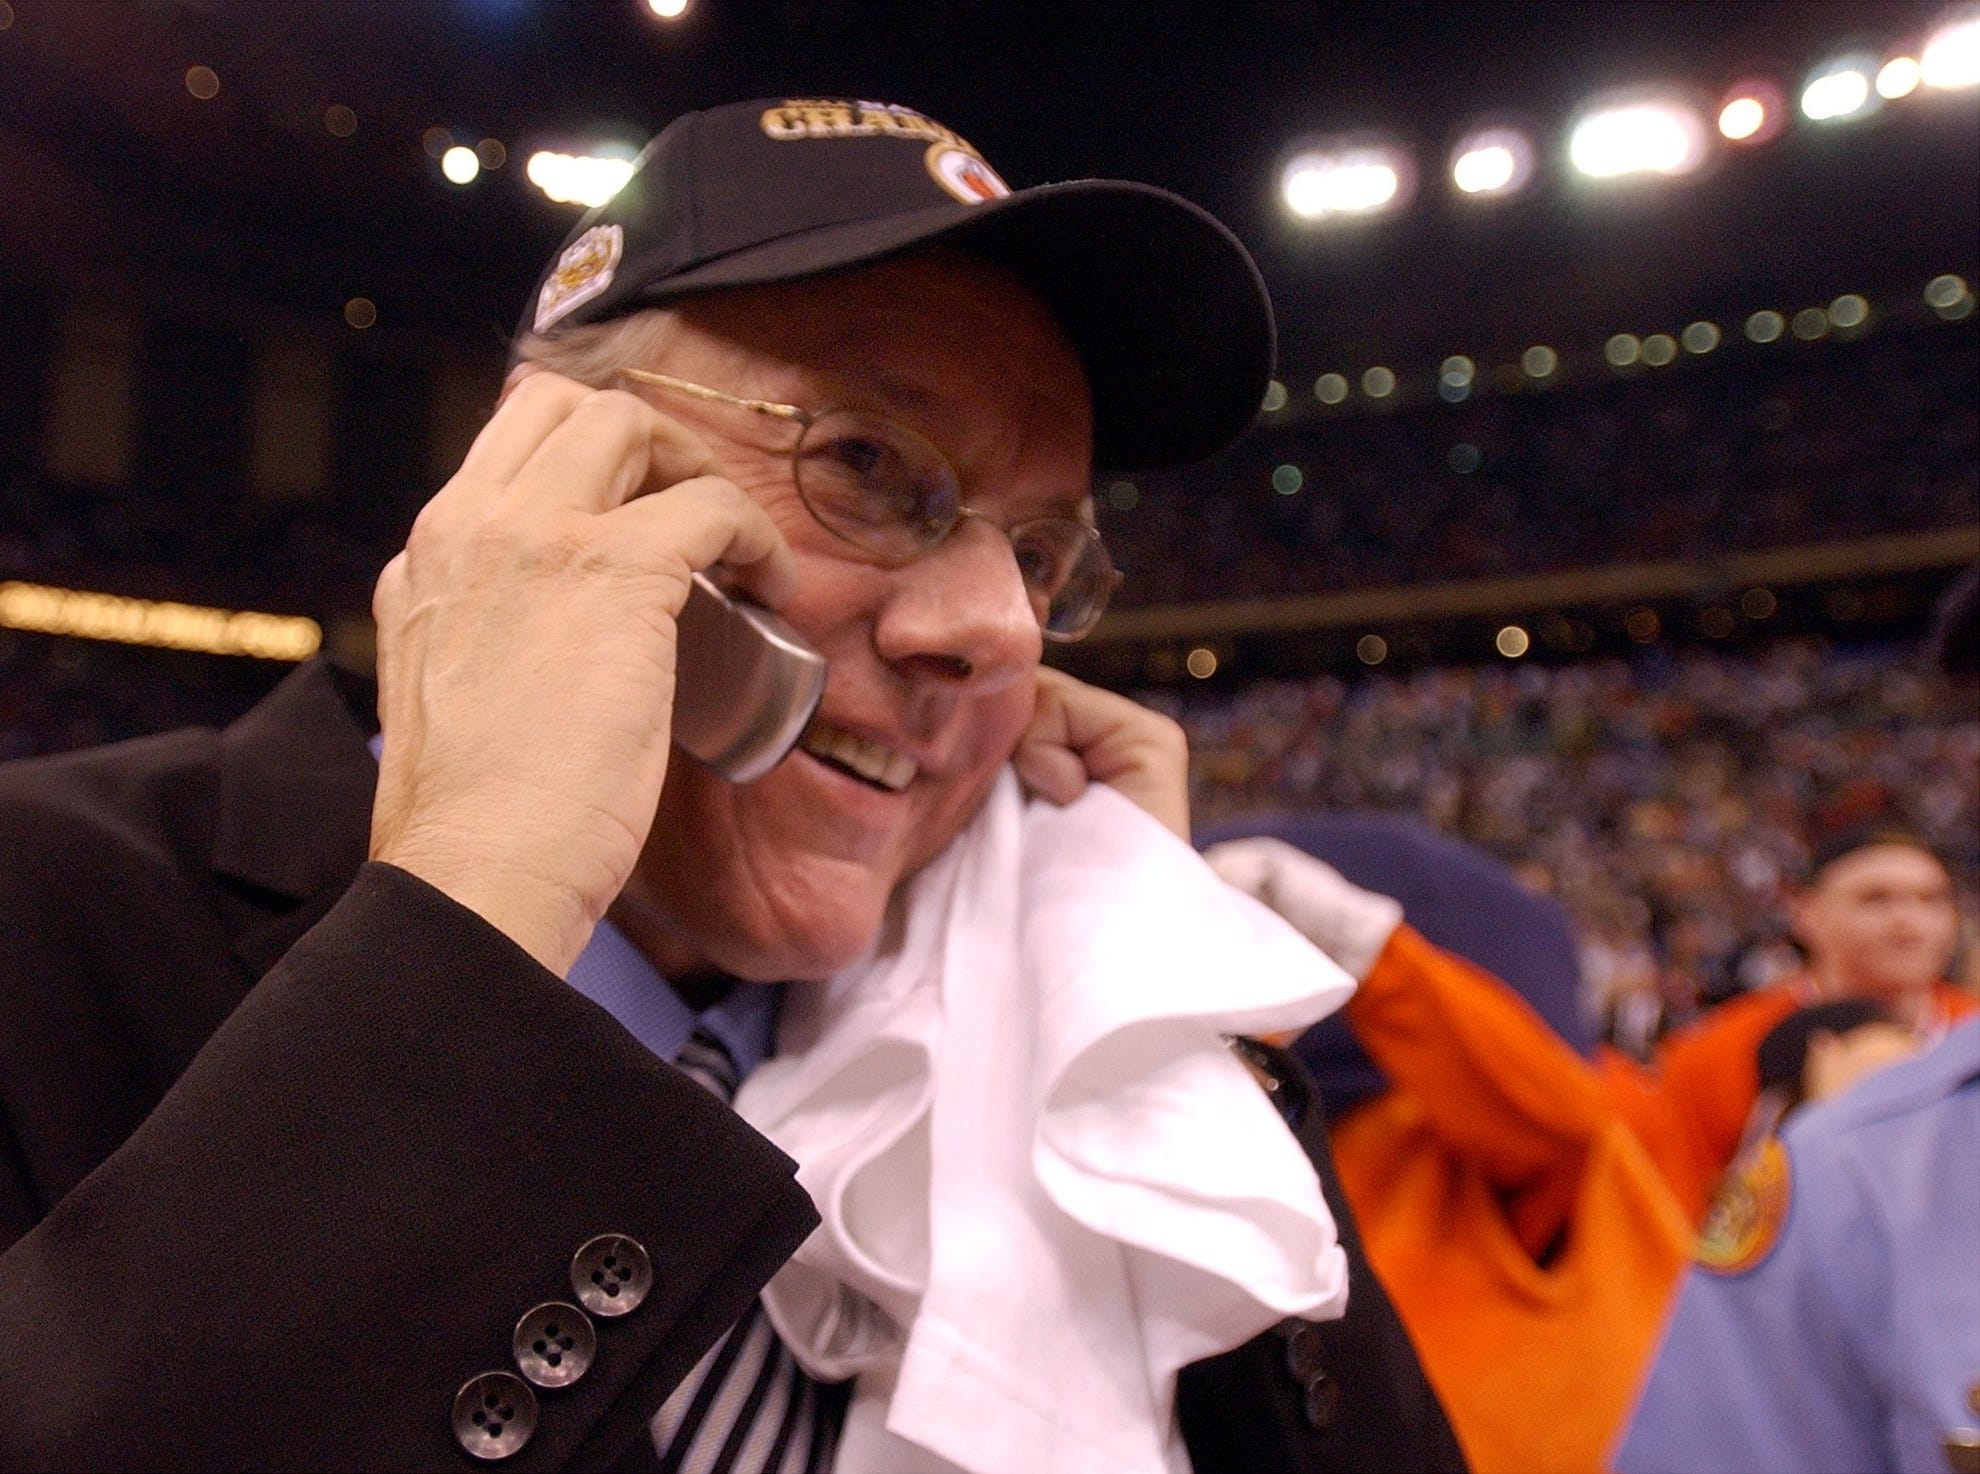 Syracuse head coach Jim Boeheim takes a call following the Orangemen's 81-78 win over Kansas in the 2003 national championship game.